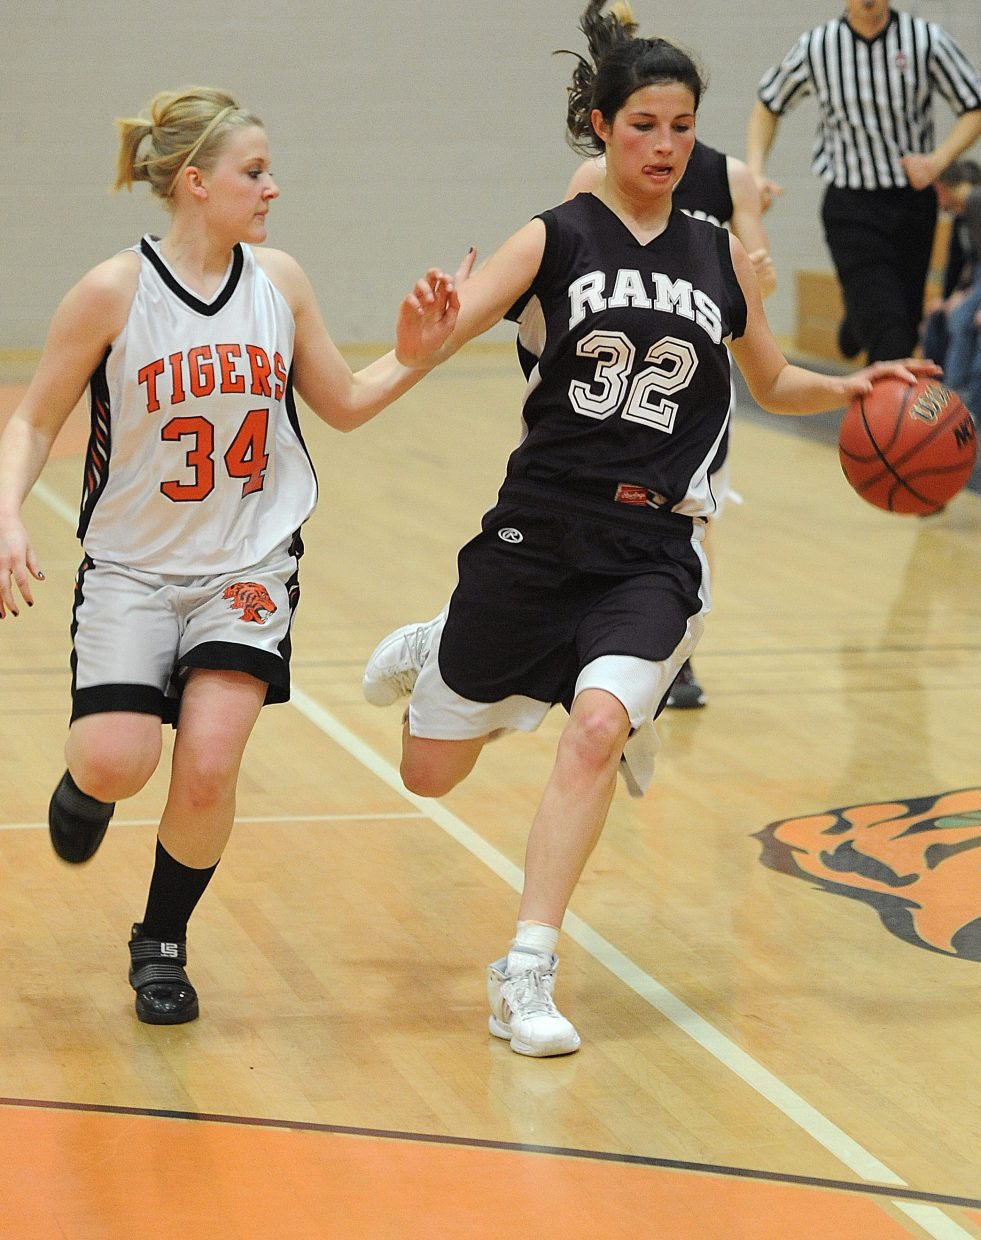 Soroco's Ceanna Rossi drives down the court against Hayden's Amber Sather. The Tigers beat the Rams, 70-54.